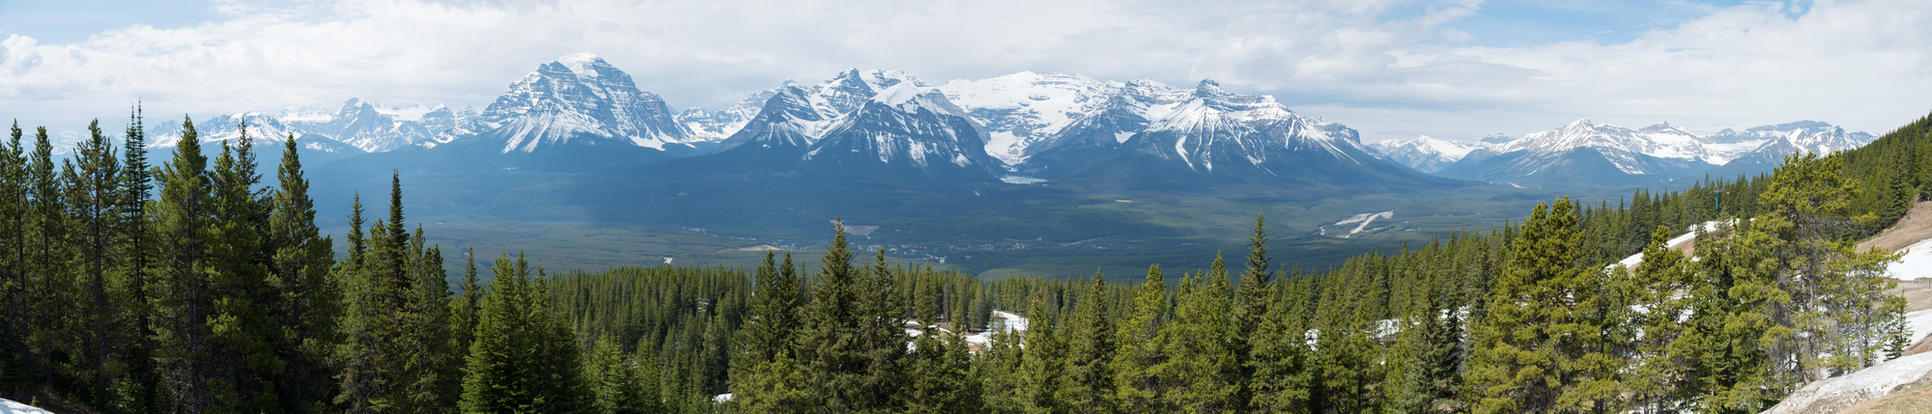 Canadian Rockies by the3dman